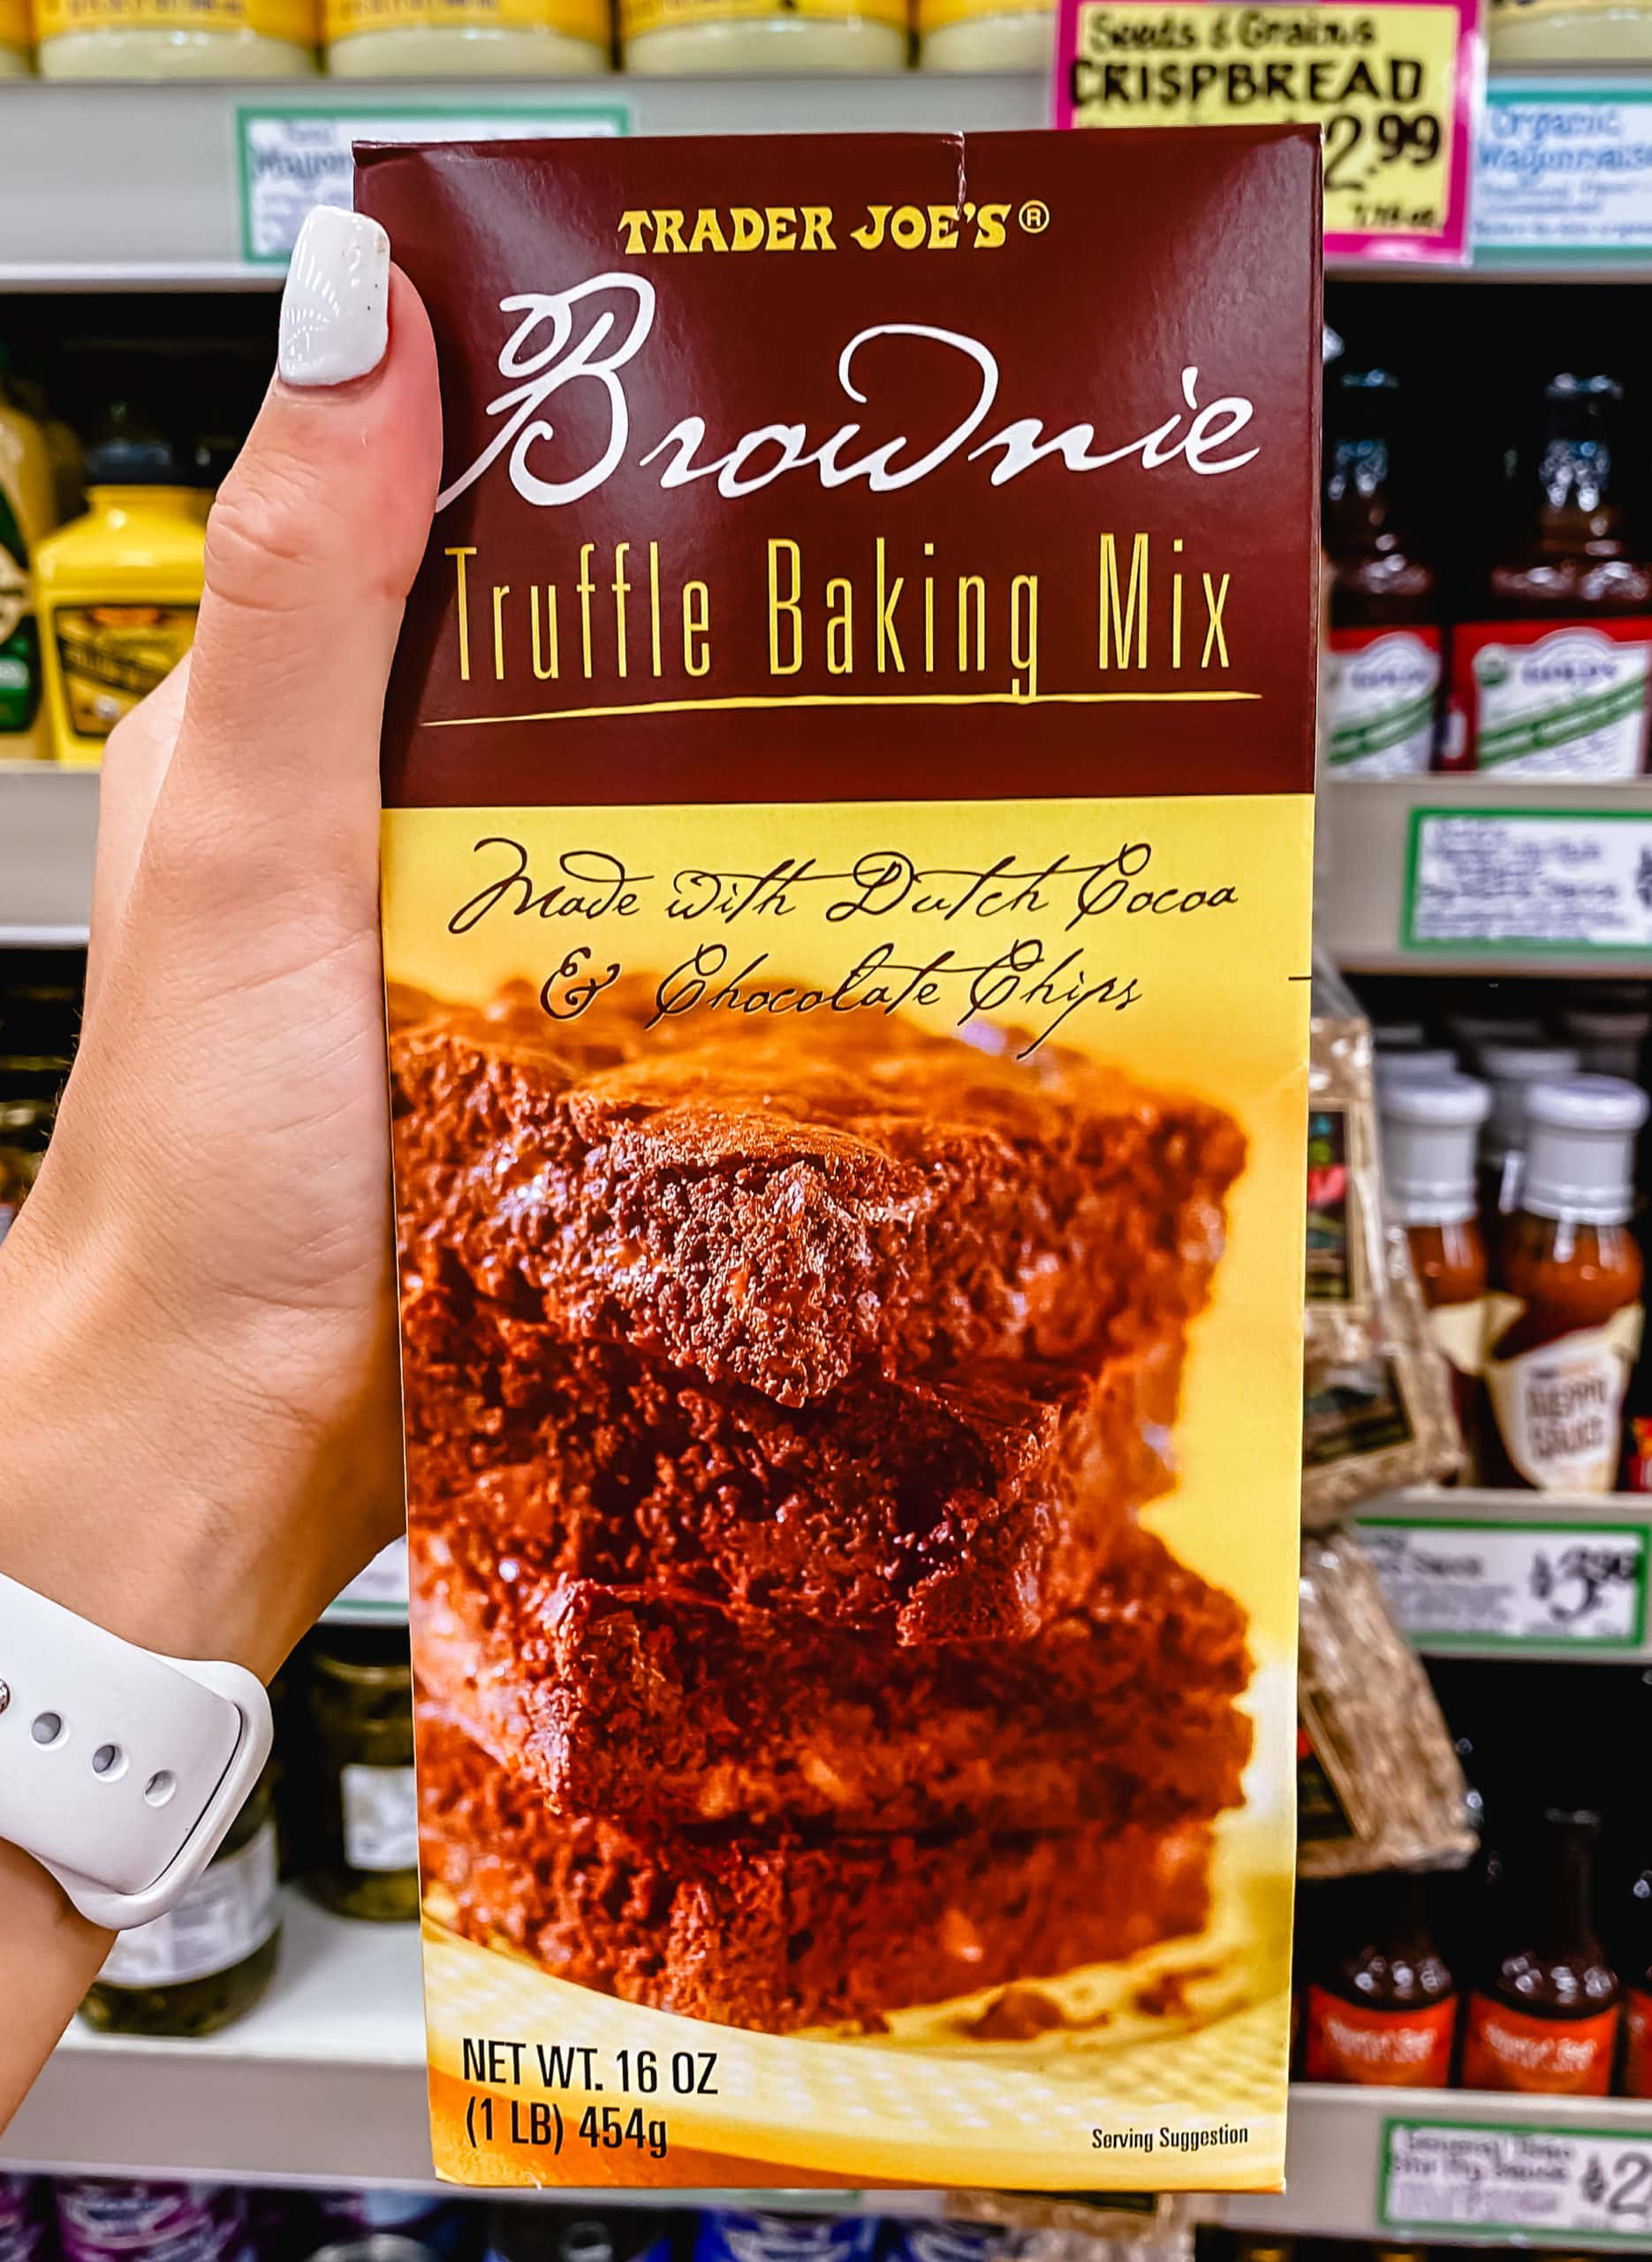 Brownie Truffle Baking Mix from Trader Joe's. Best Things to Buy at Trader Joe's.